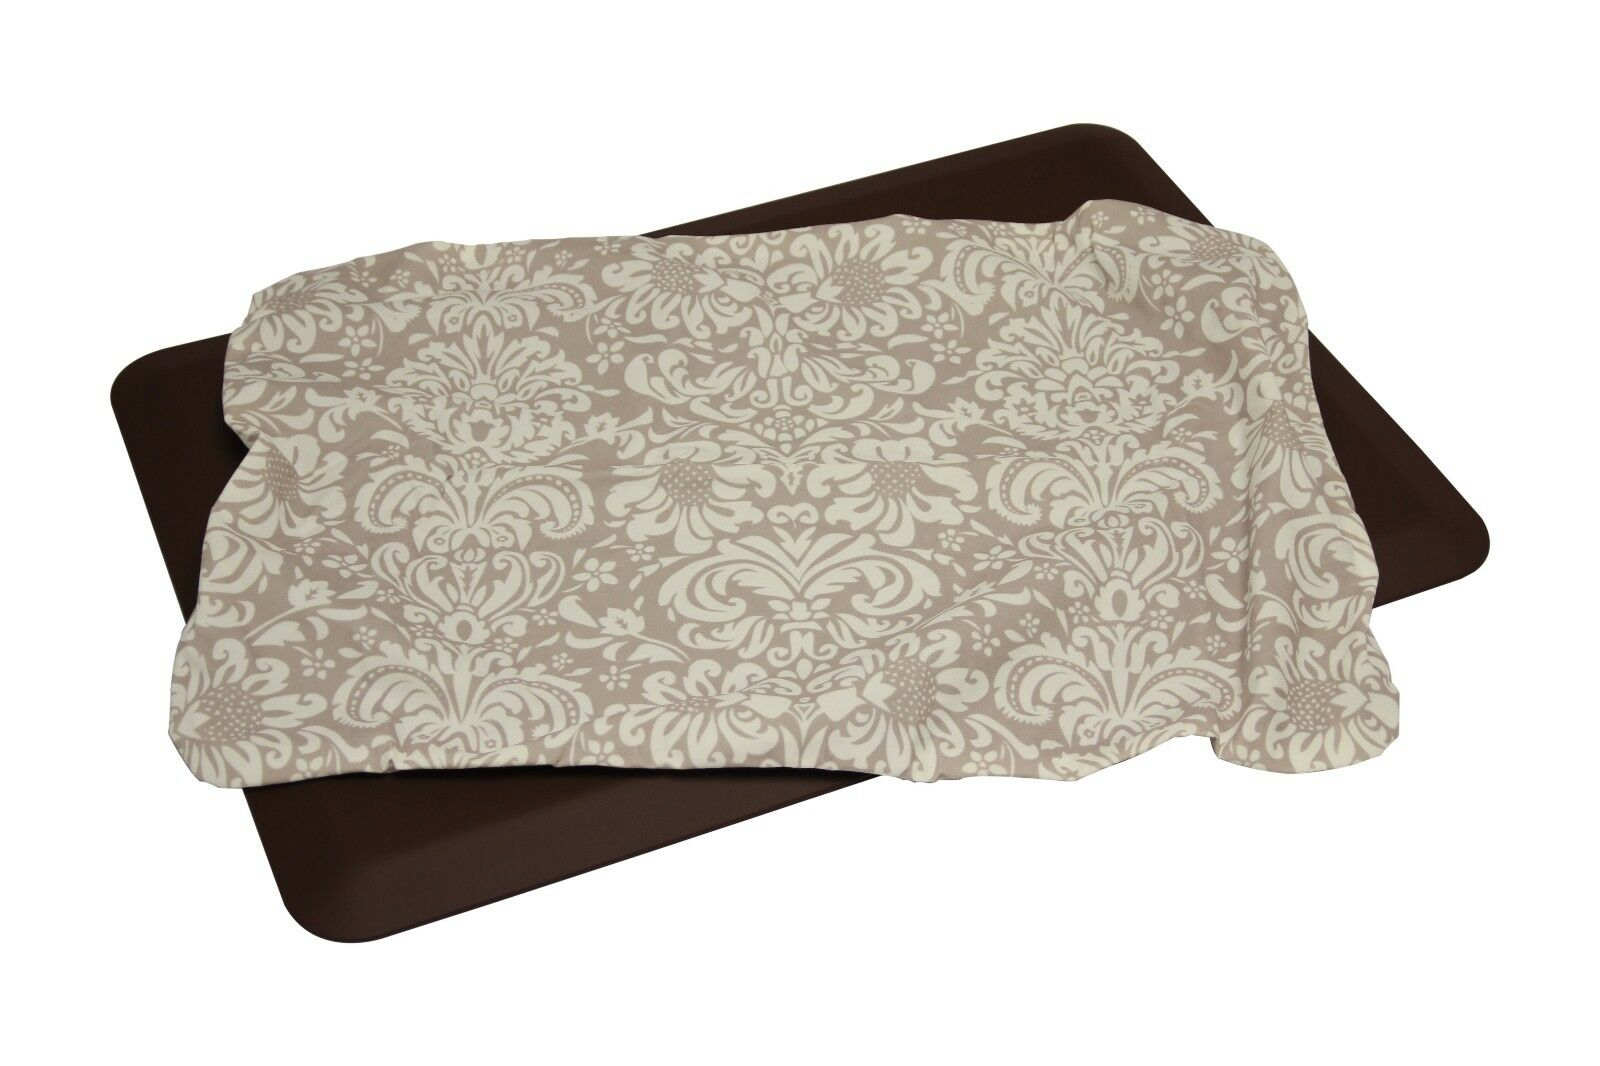 WellnessMats 3' x 2' Couture Seasons Mat Cover Combo - Dove